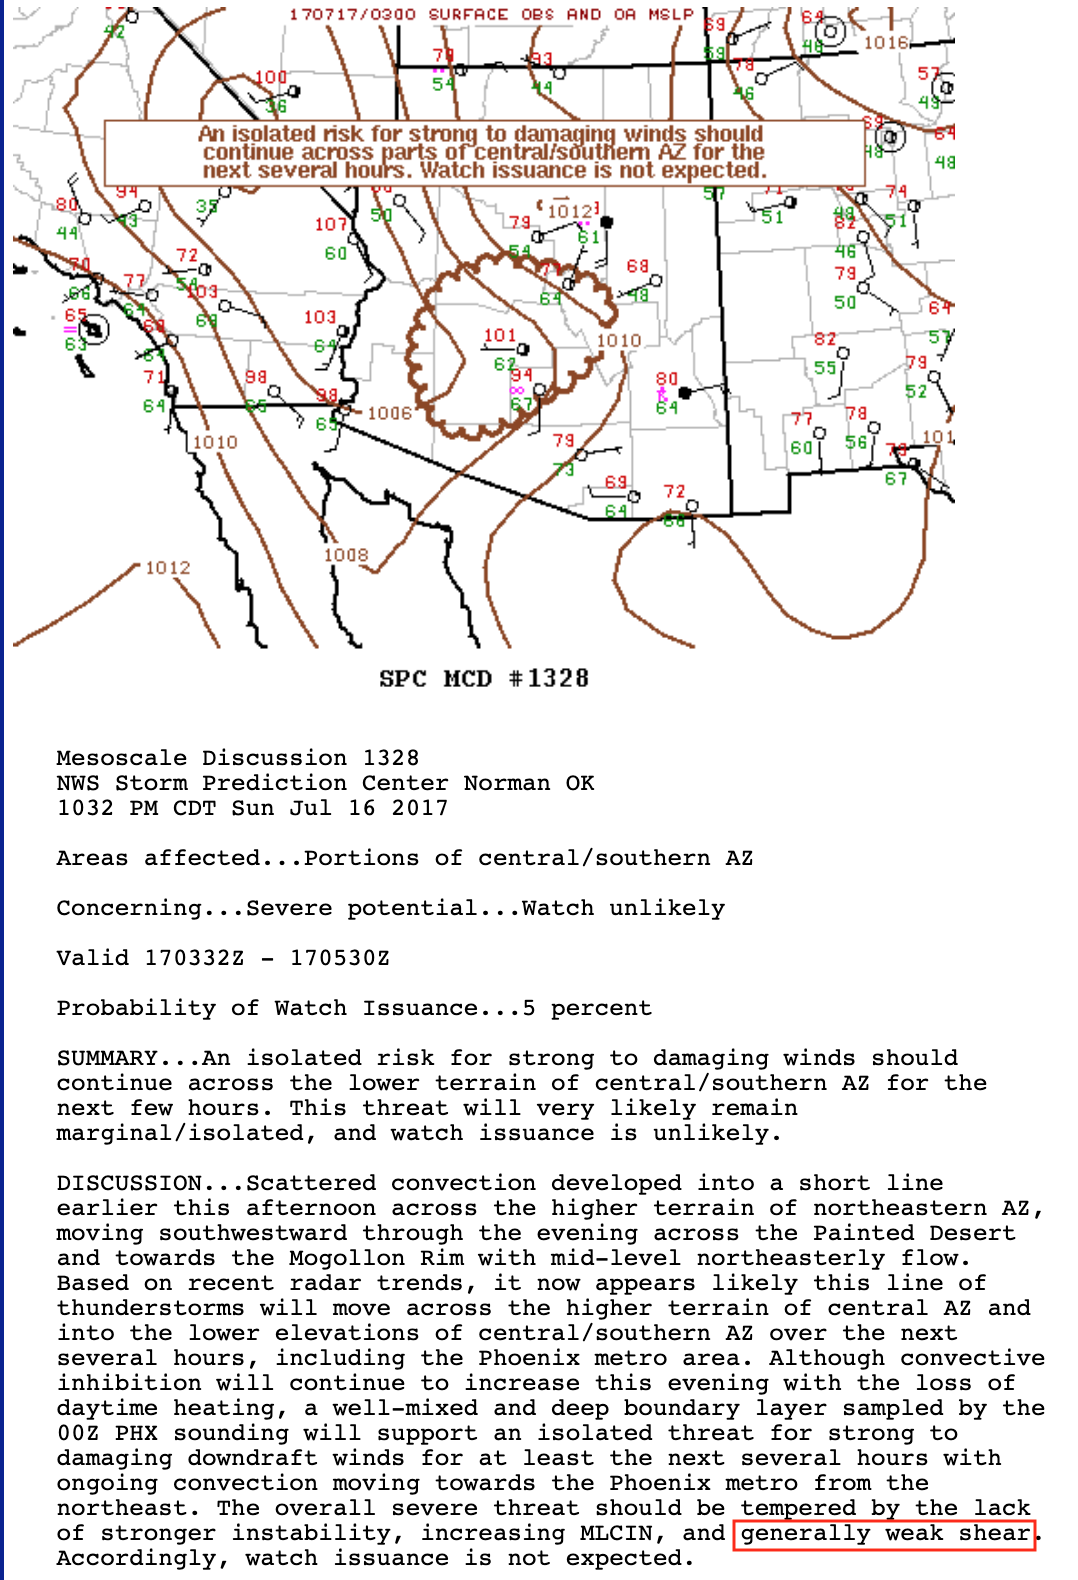 SPC Mesoscale Discussion [click to enlarge]